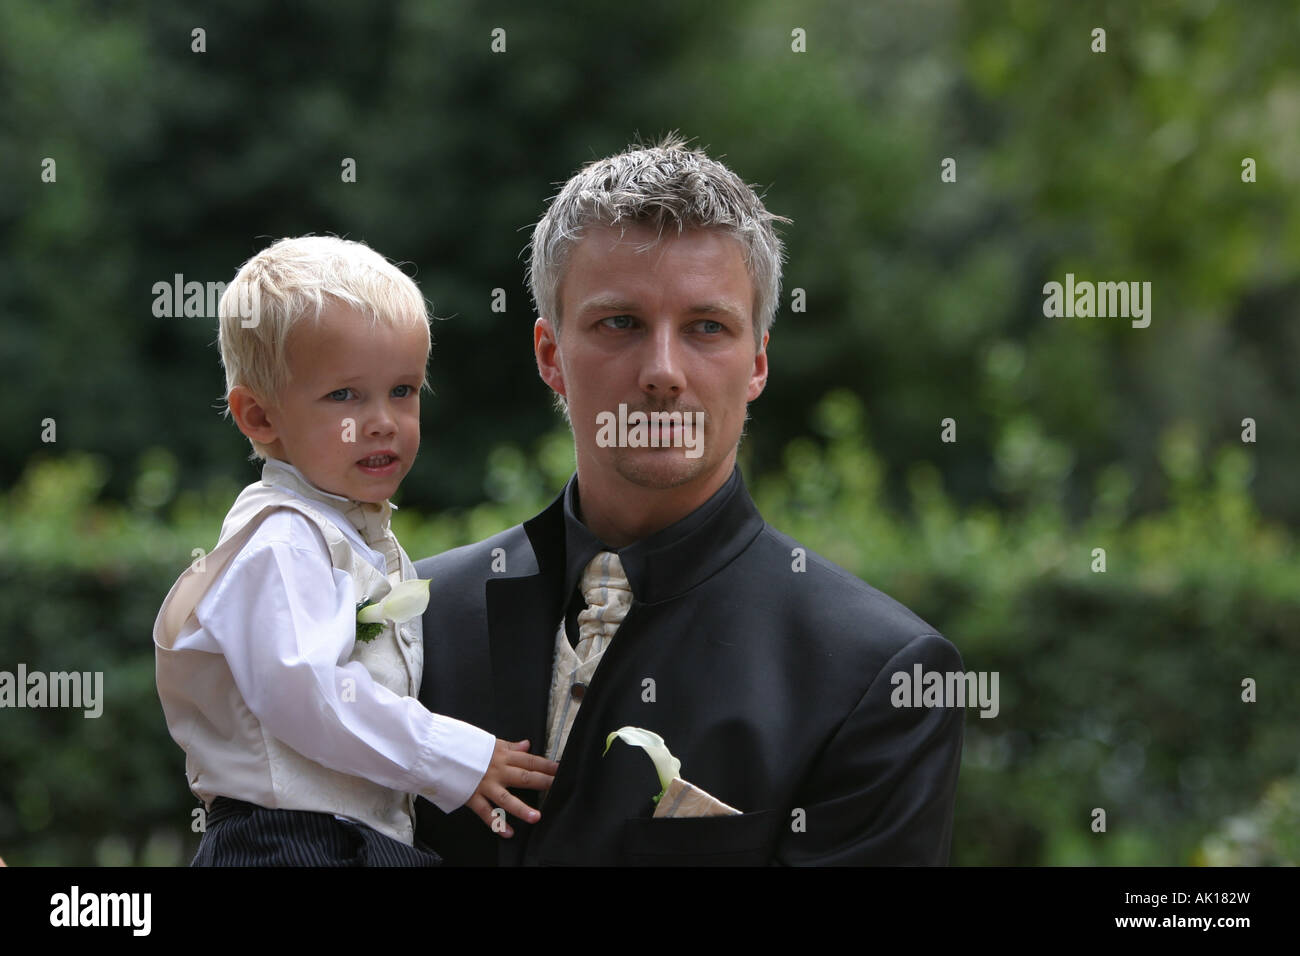 Groom and son. - Stock Image